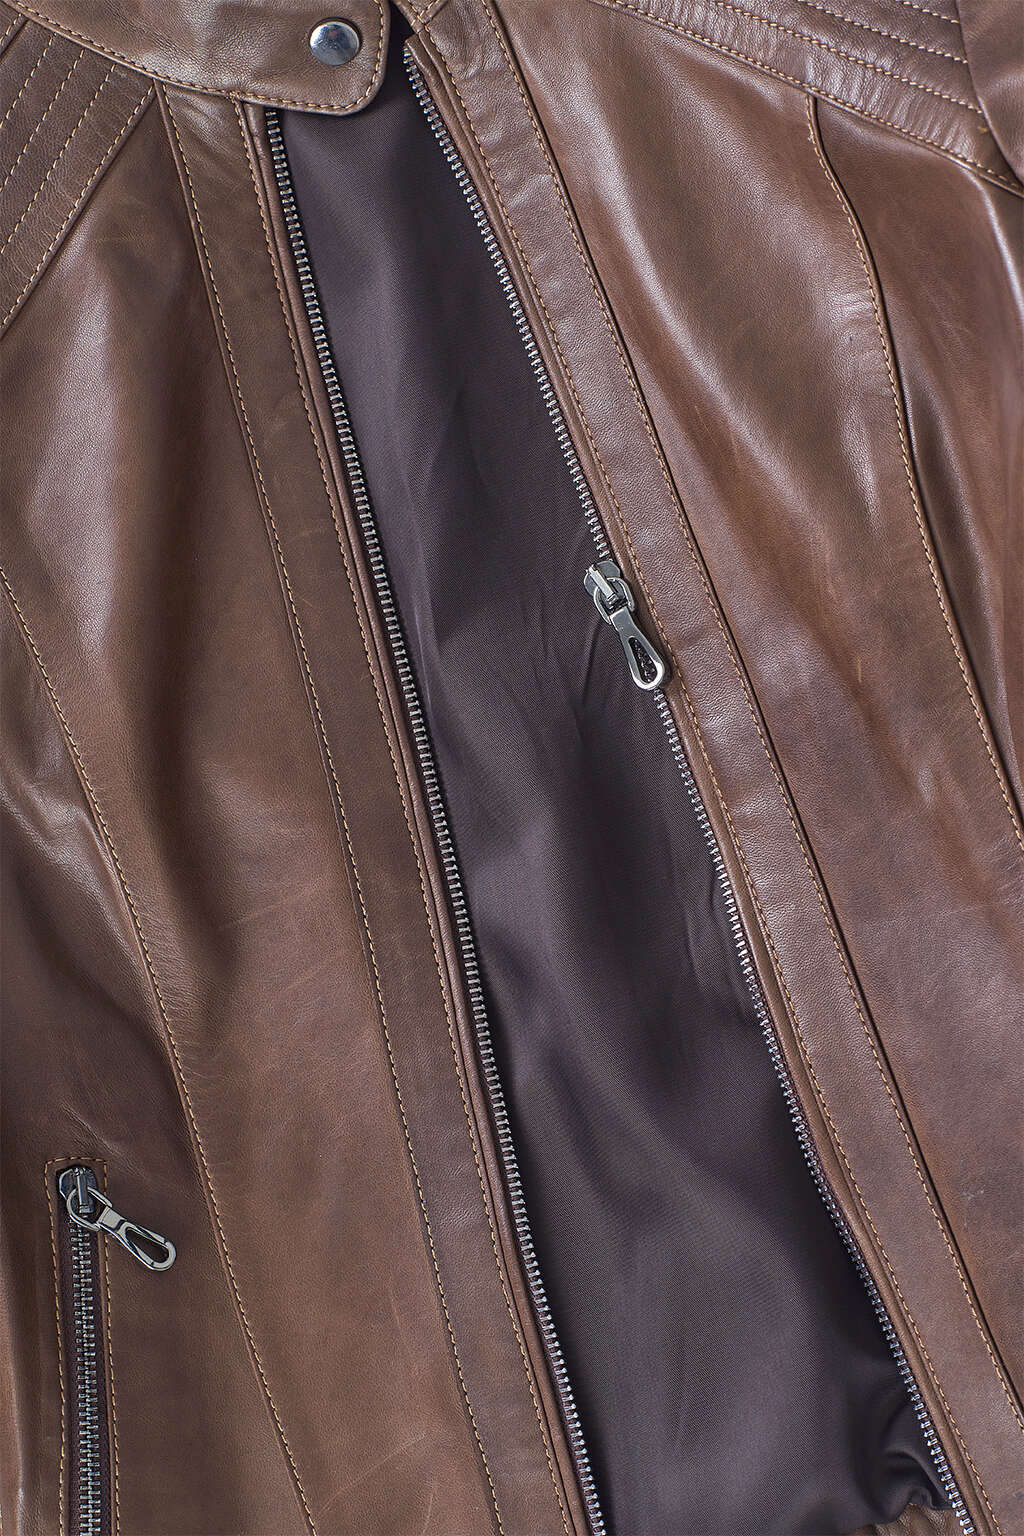 Zipper and Inner Lining Detail of Hickory Brown Ribbed Racer Leather Jacket